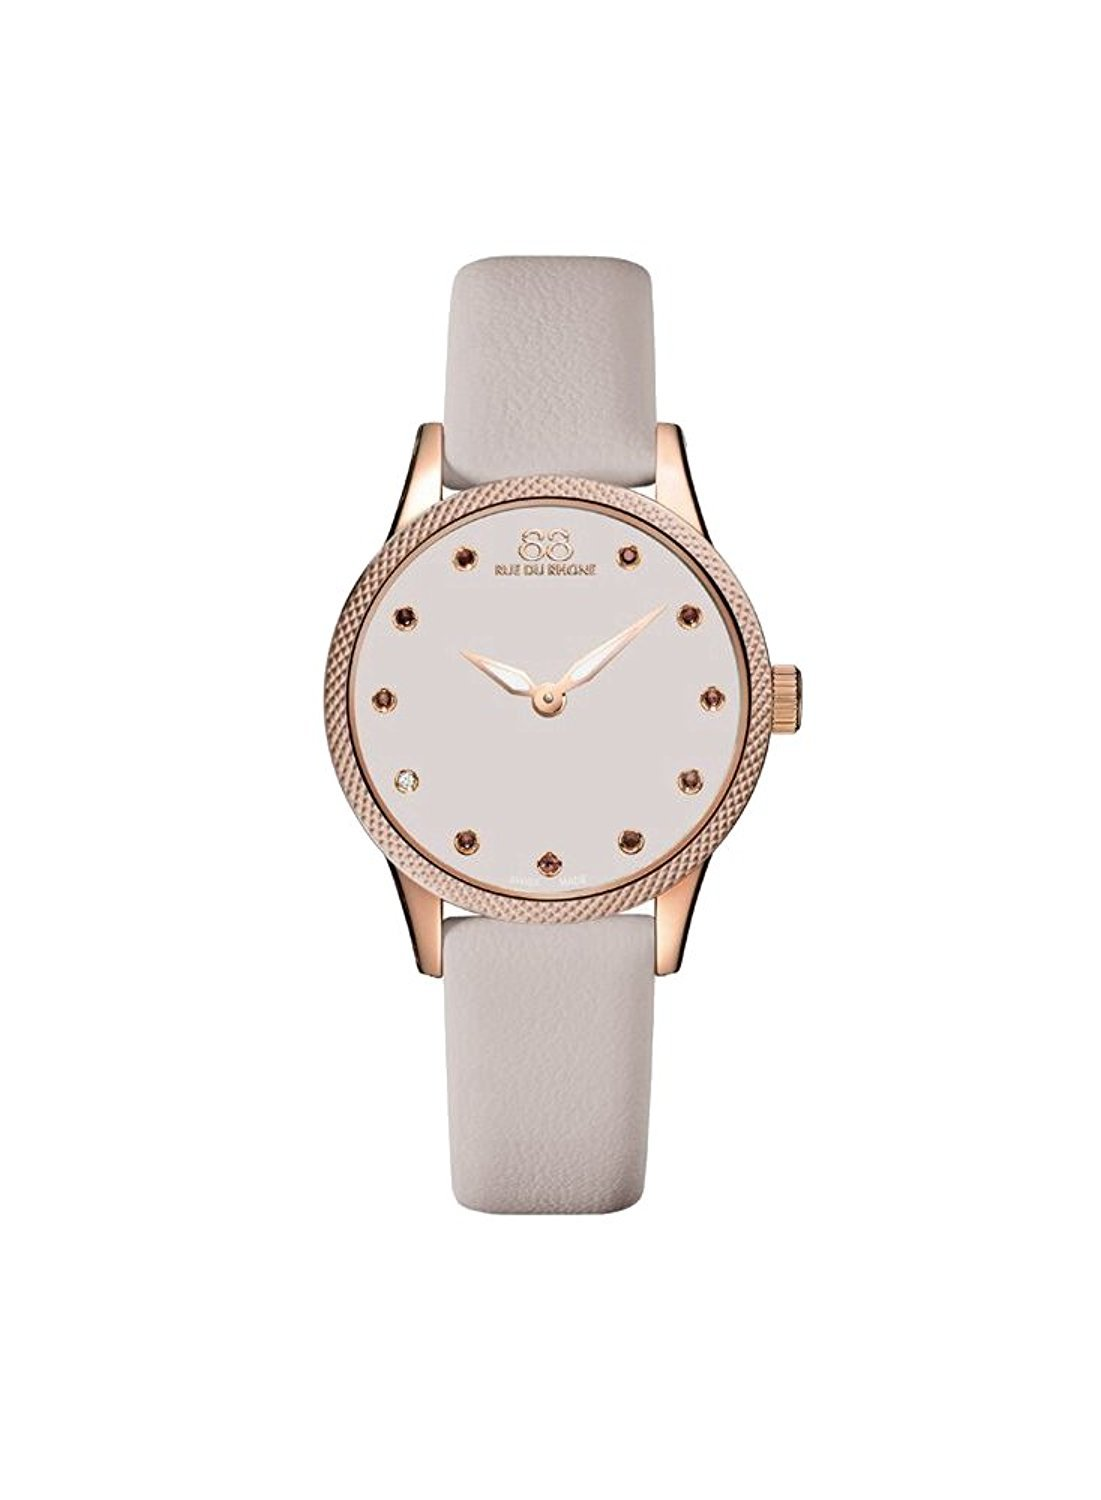 88 Rue du Rhone Swiss Quartz Rive Collection Women's Watch 87WA173201